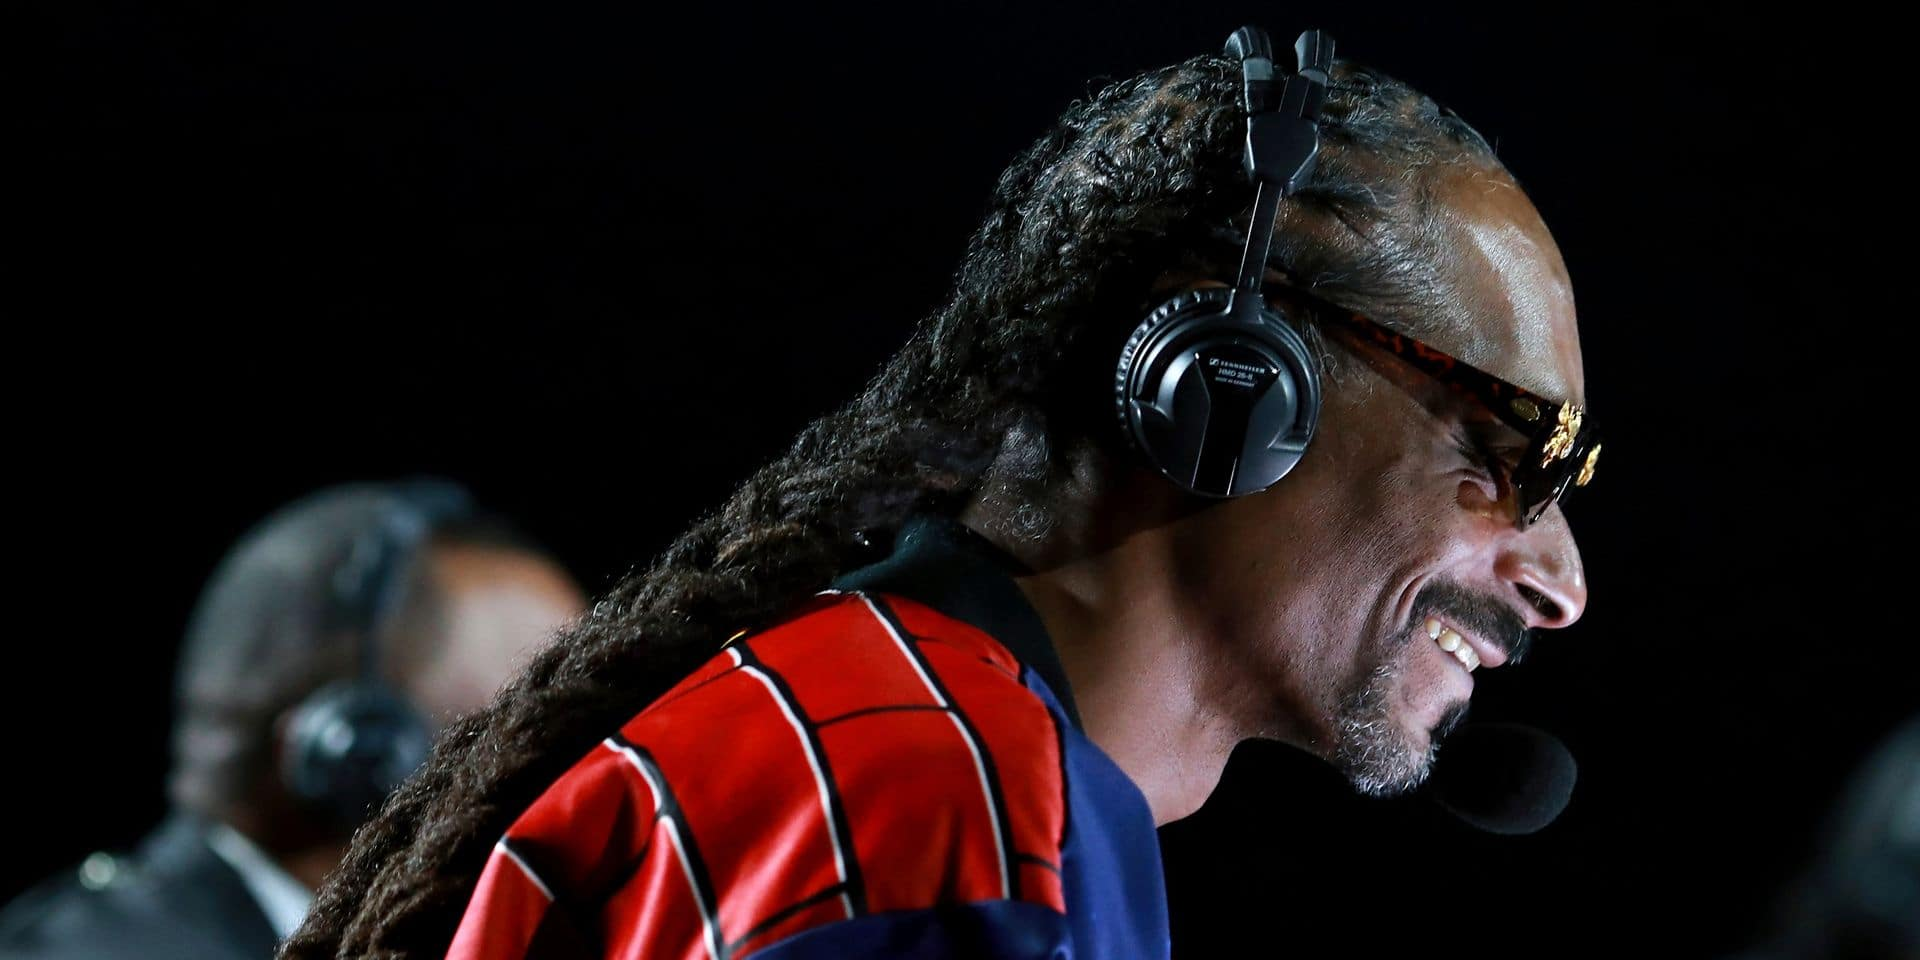 Le grand gagnant du combat de boxe entre Mike Tyson et Roy Jones Jr se nomme… Snoop Dogg !